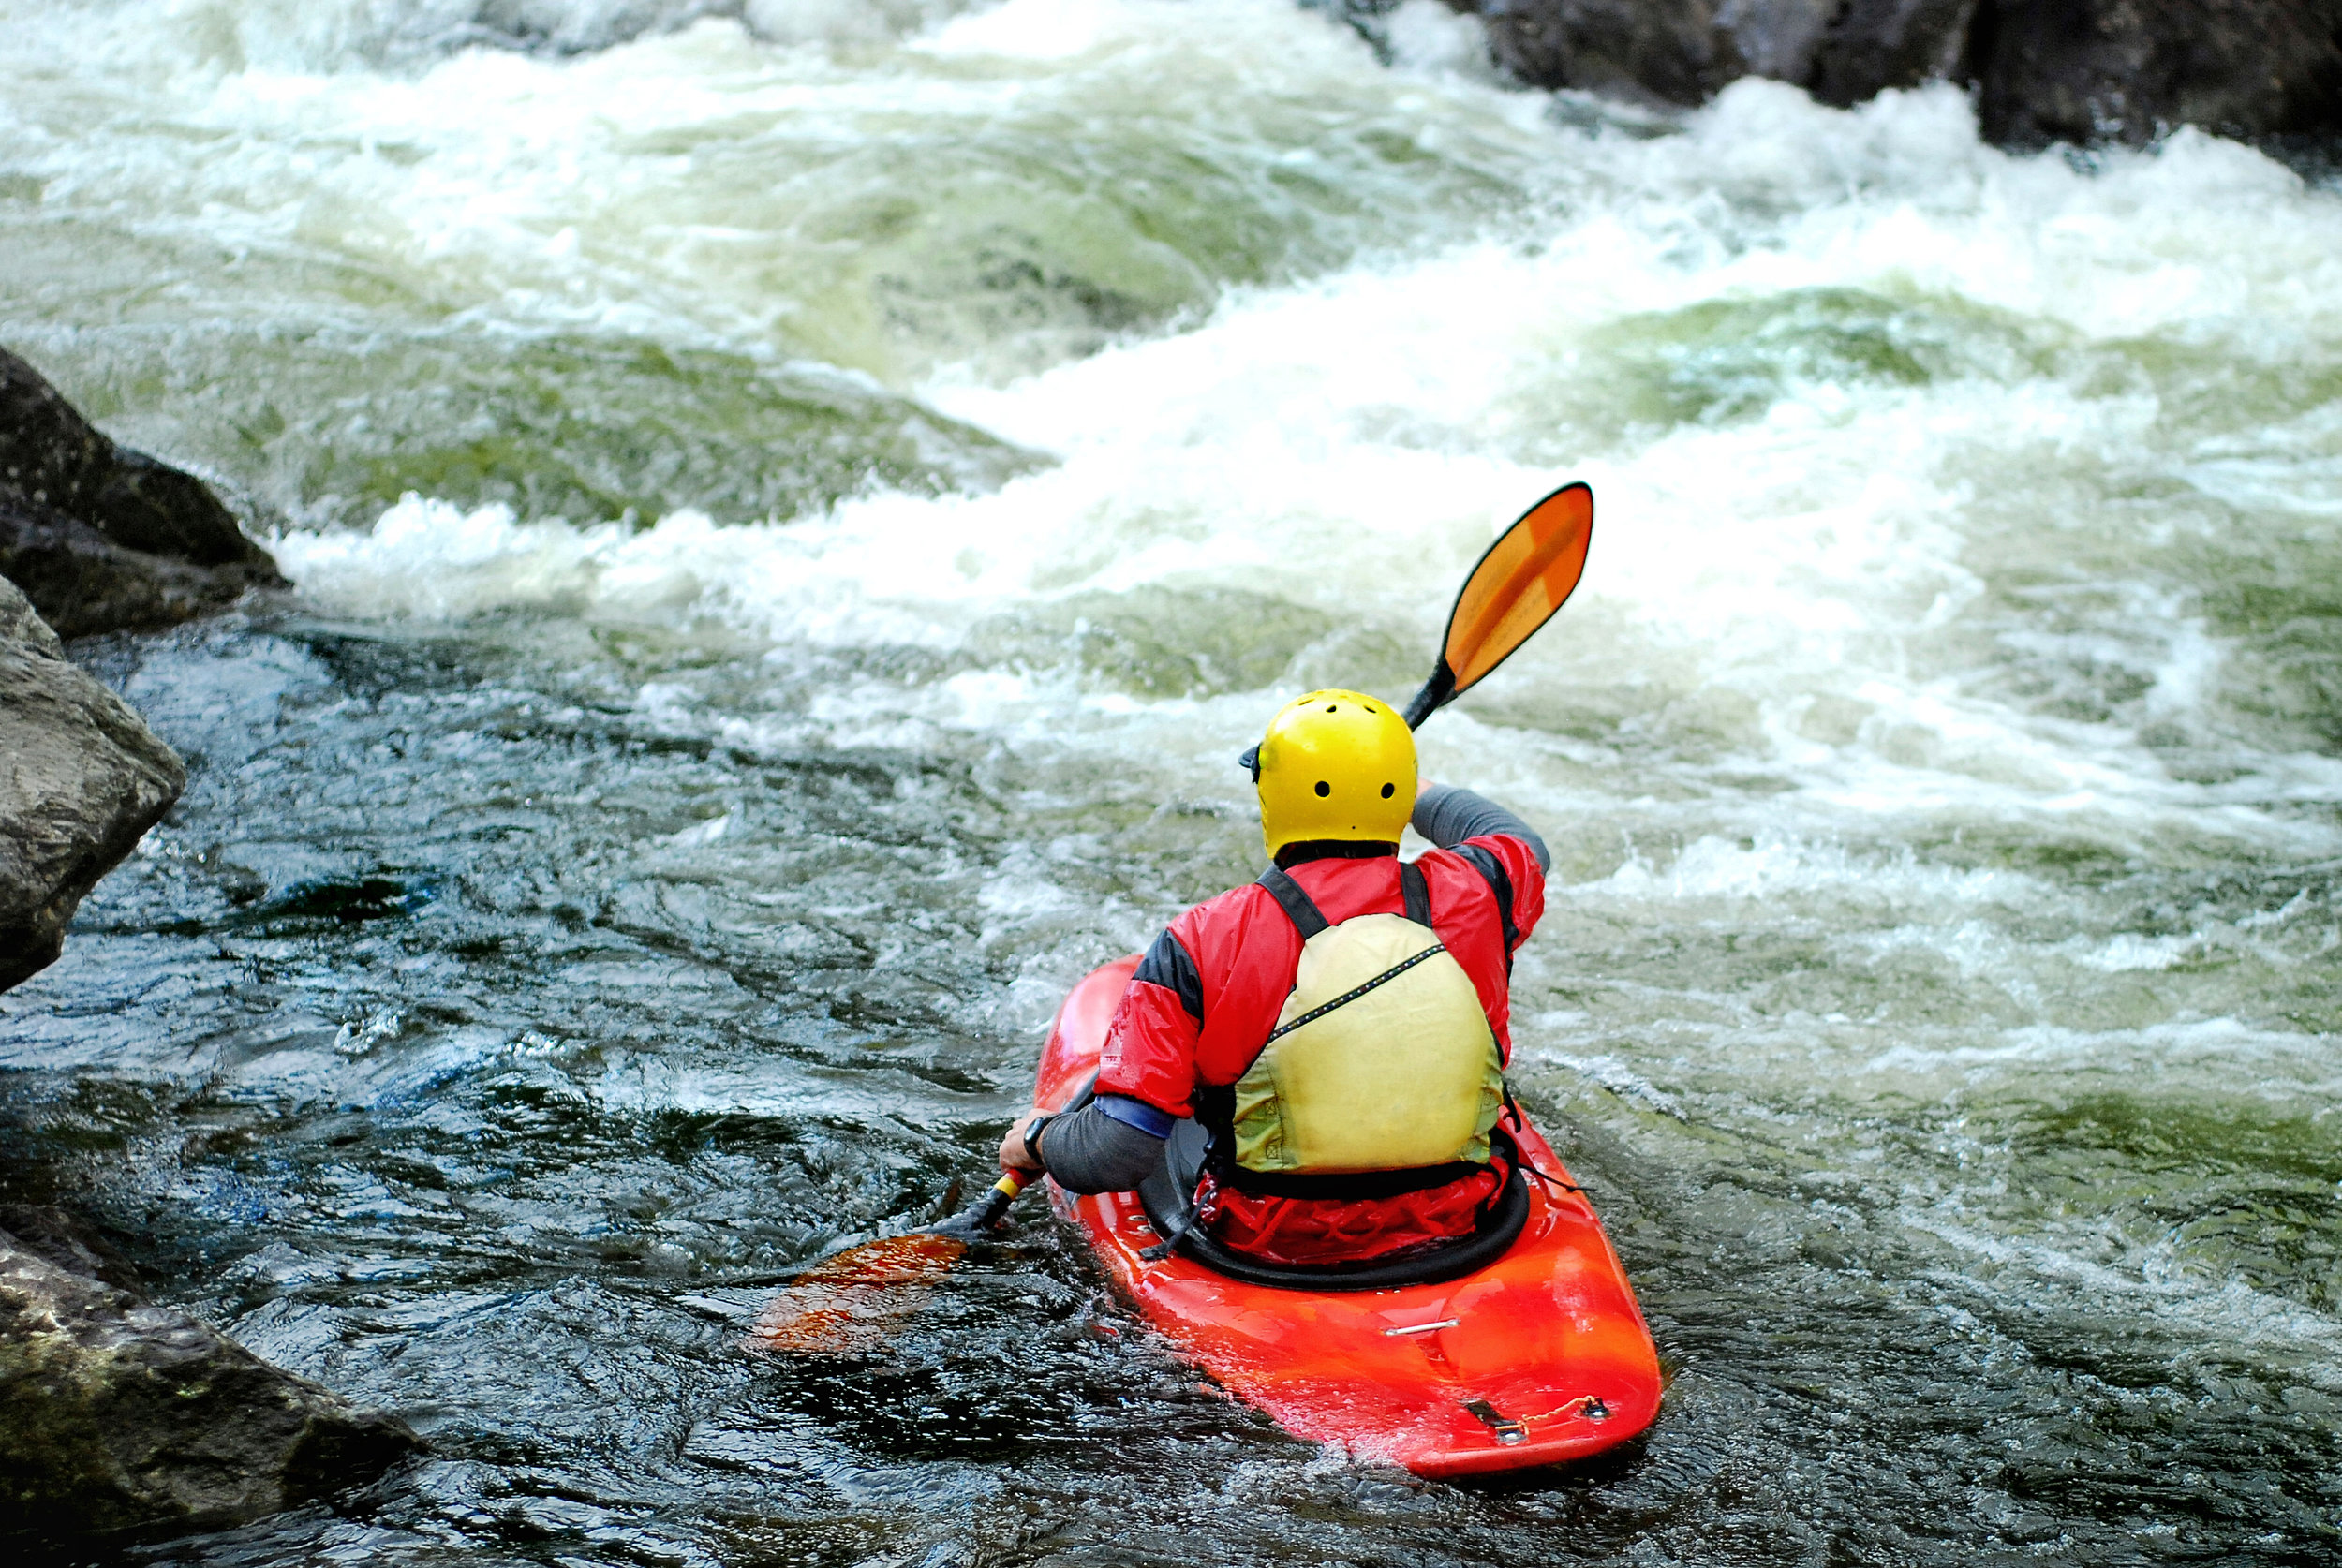 Back view of a red kayaker riding down some whitewater rapids.